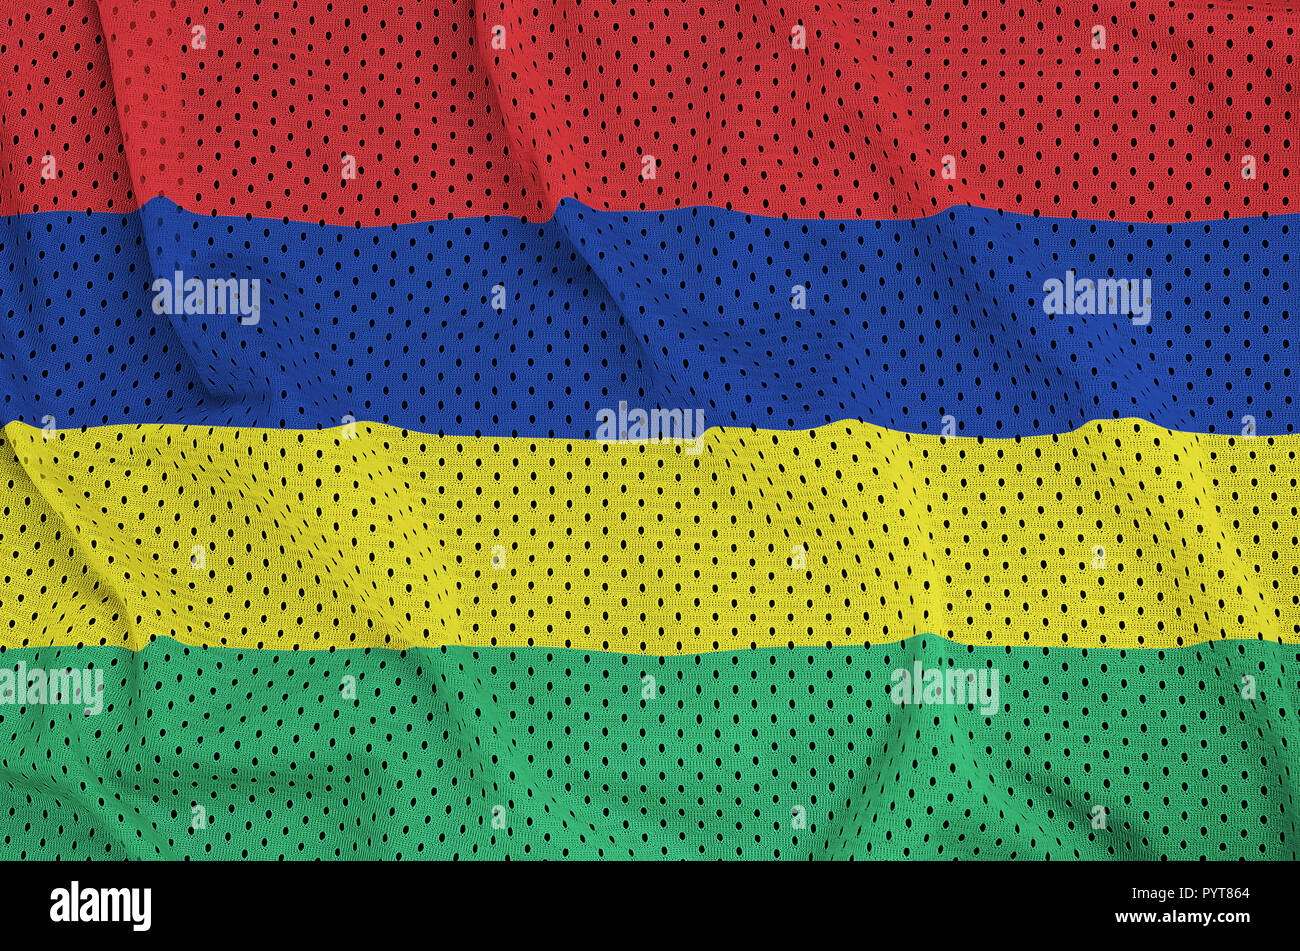 Mauritius flag printed on a polyester nylon sportswear mesh fabric with some folds - Stock Image